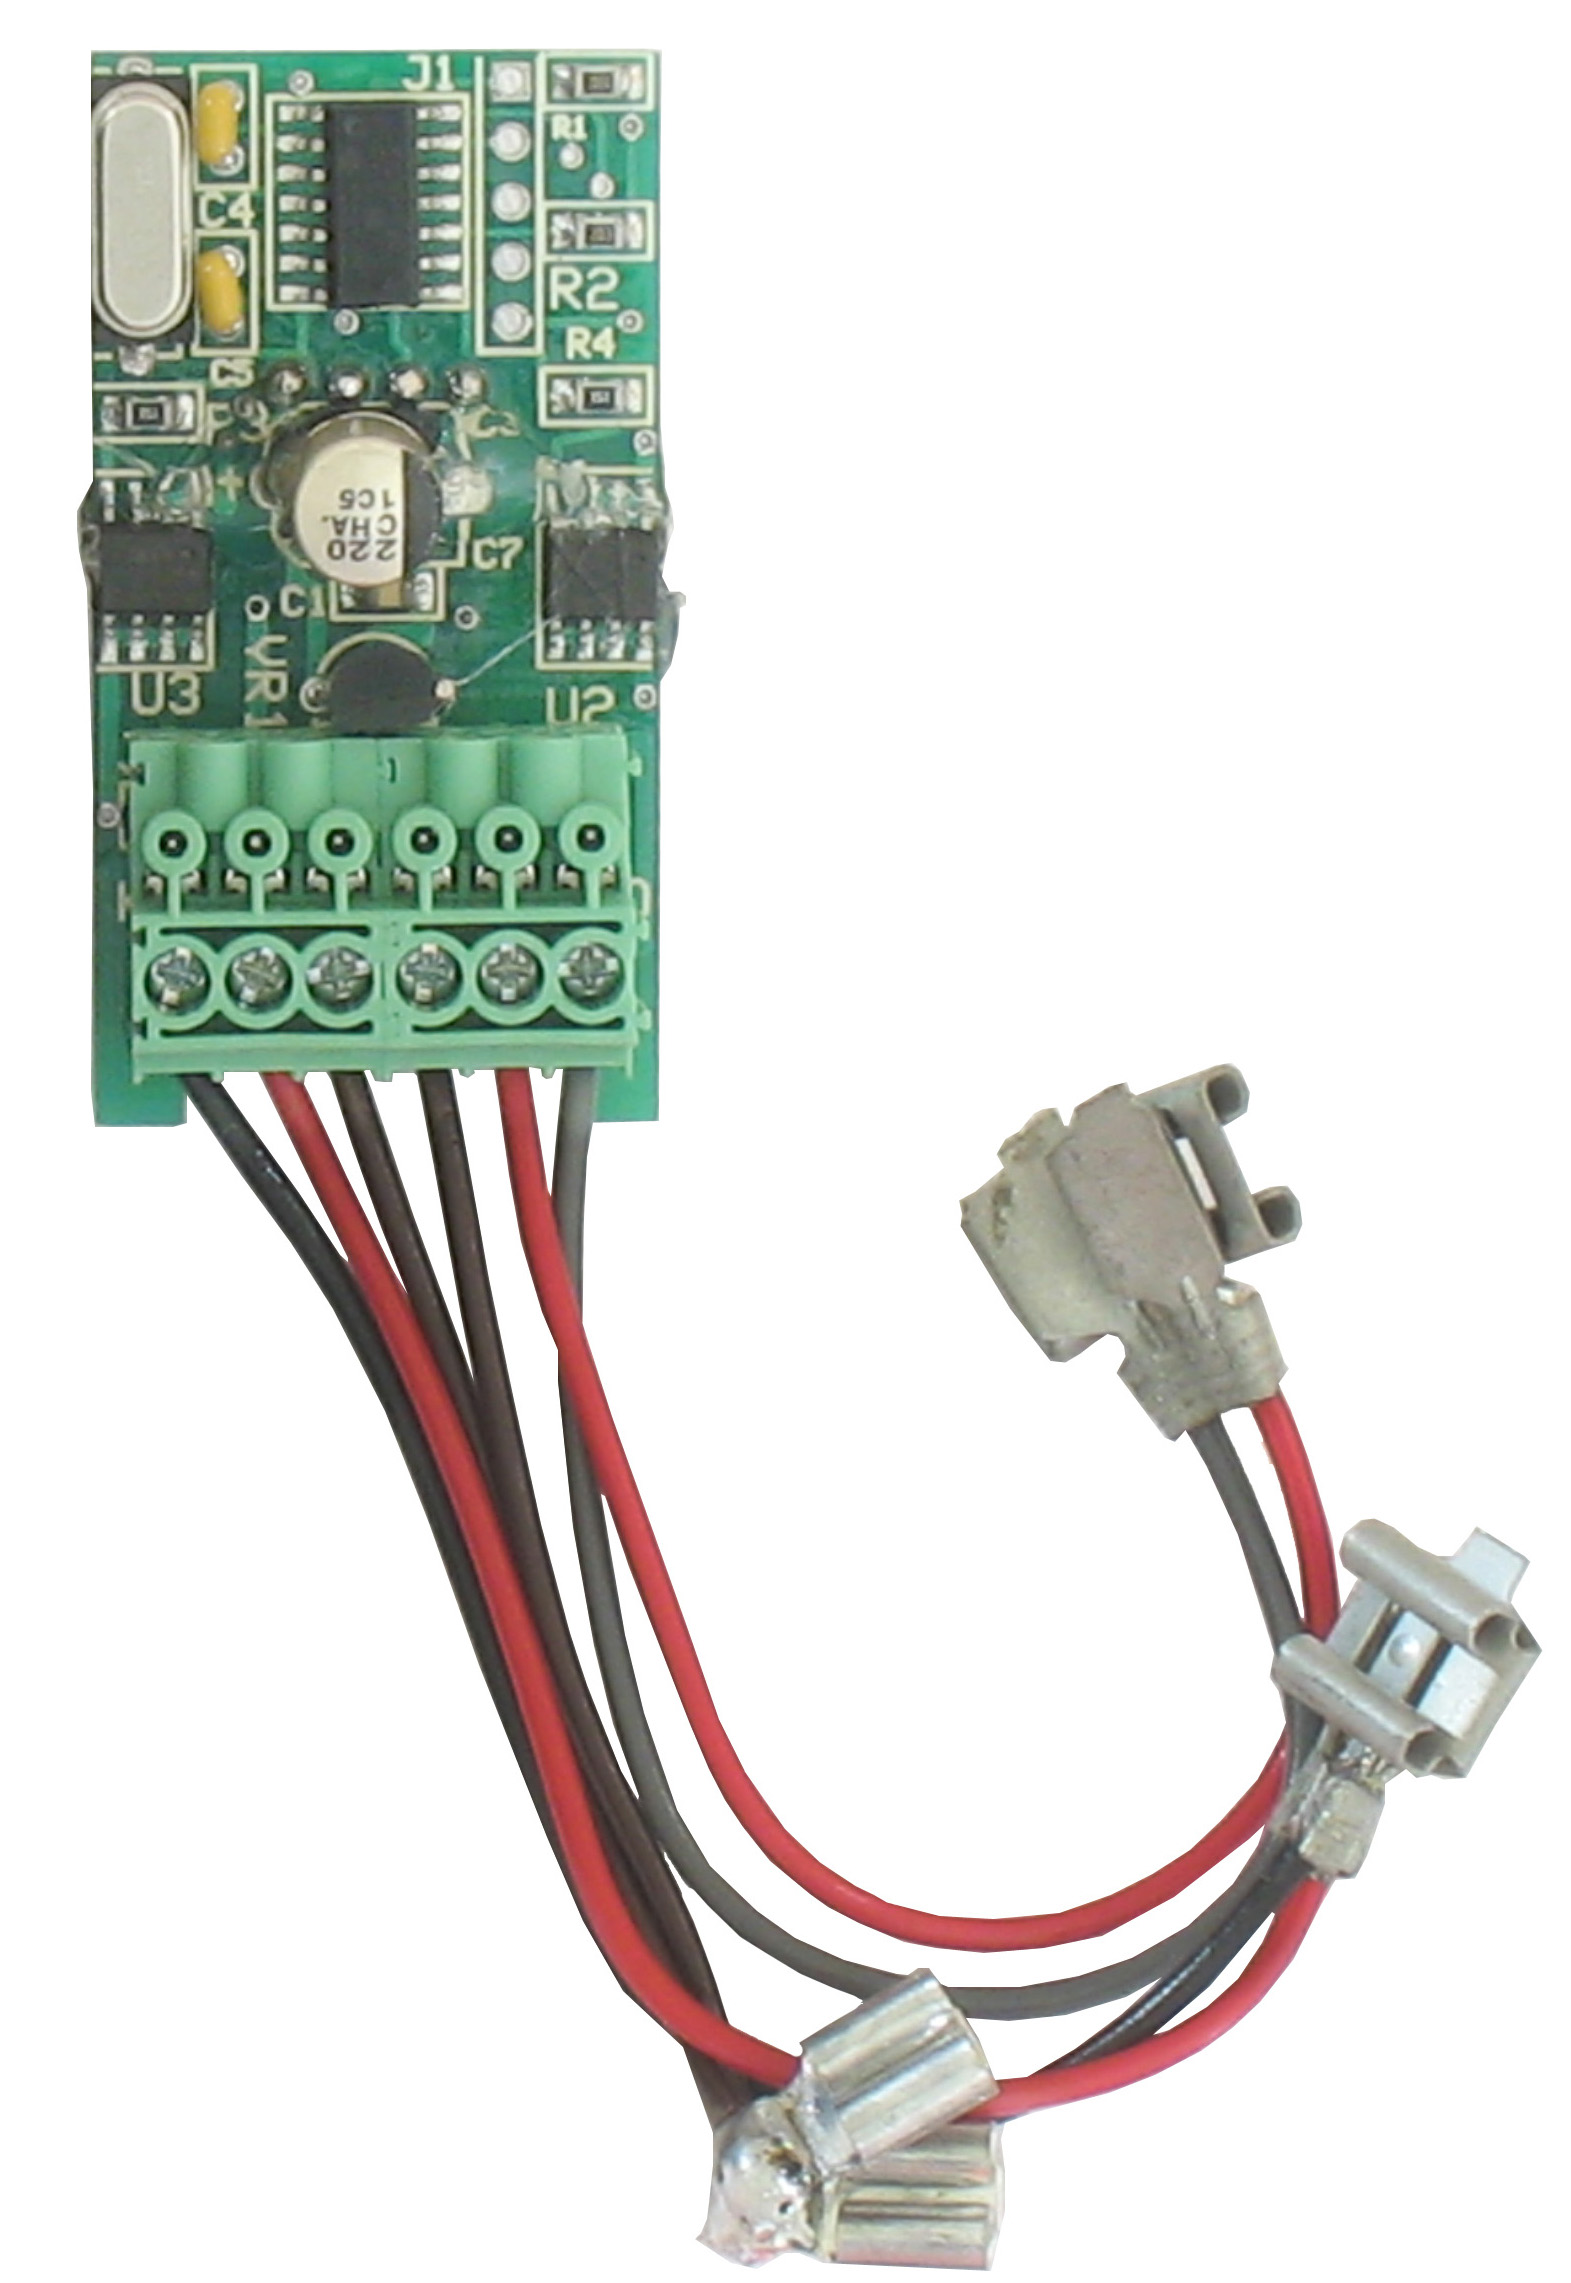 Reconditioned 60/40 circuit board & wiring harness